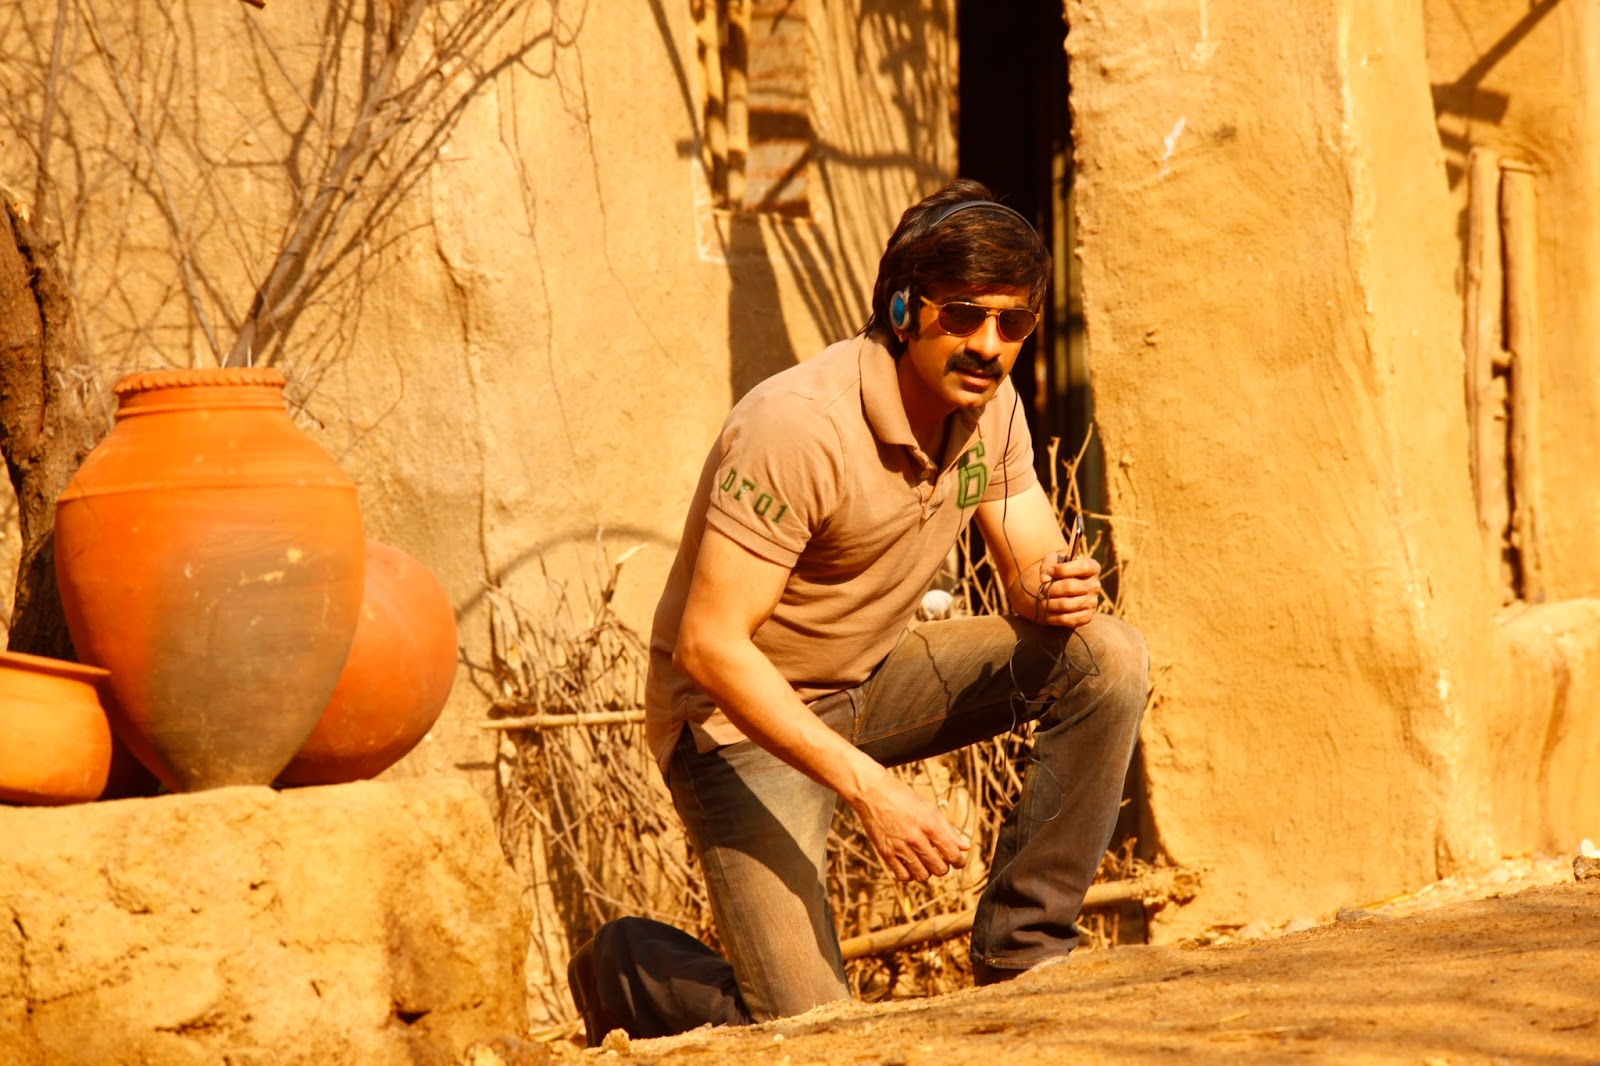 ravi teja images, photos, latest hd wallpapers free download